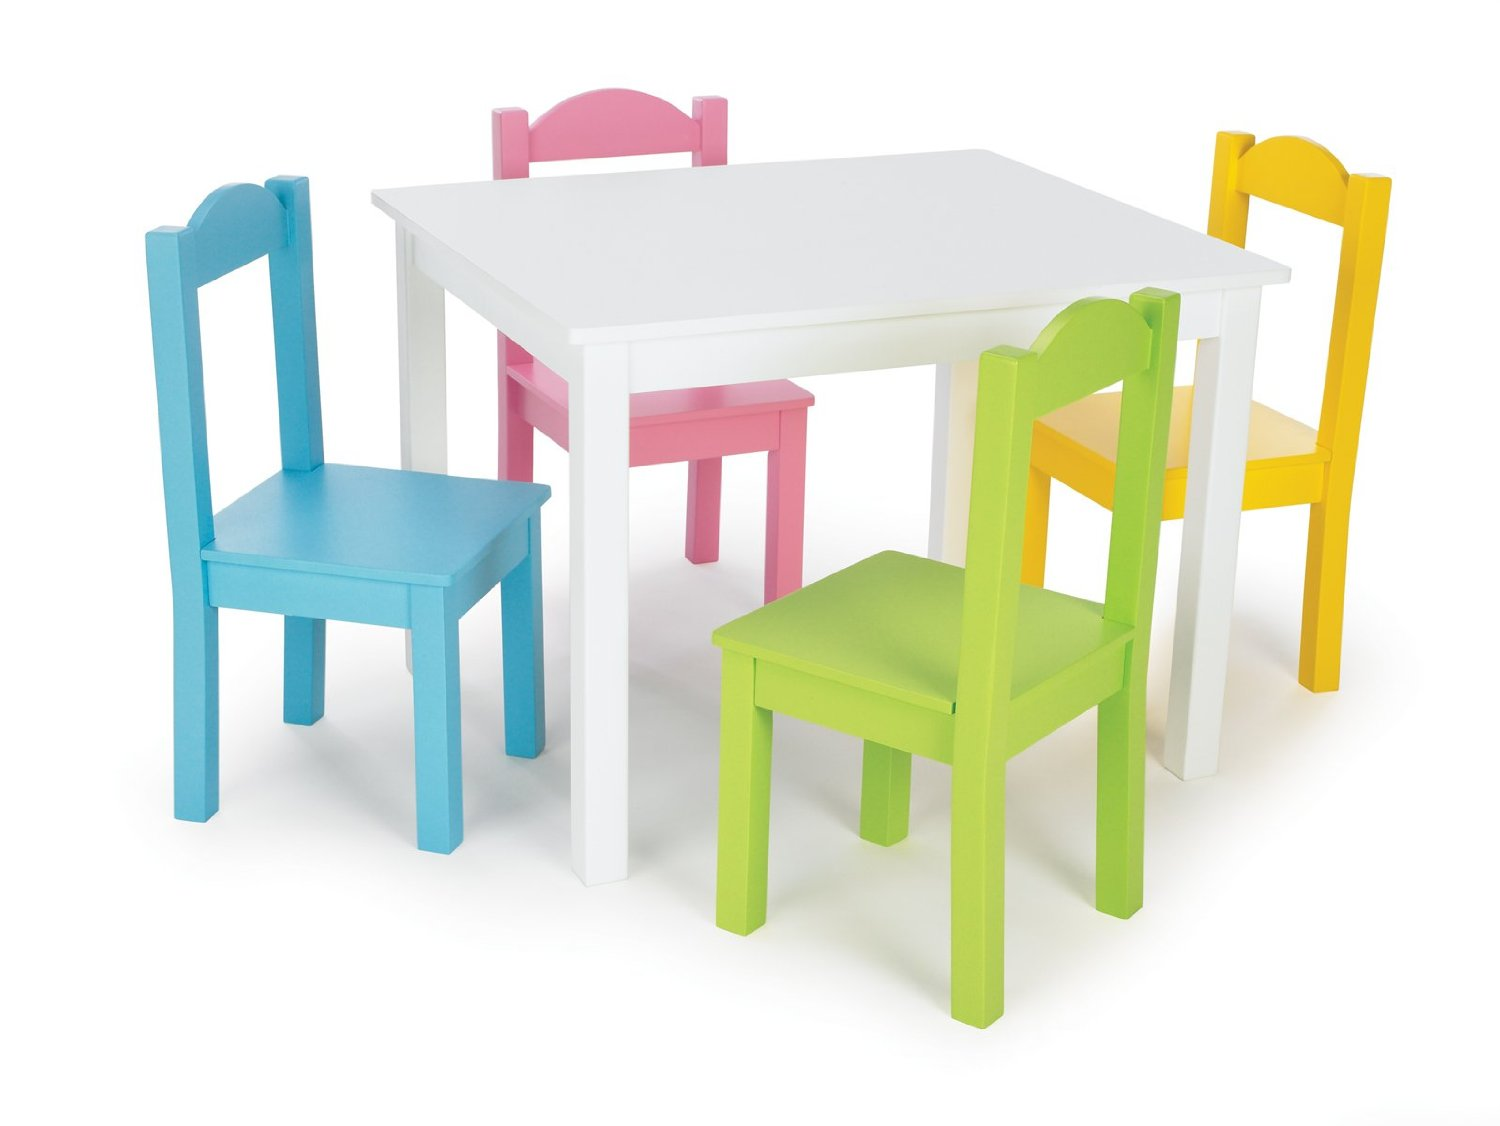 ikea table  sc 1 st  Nantucket Baby Rentals & Kids Table with Chairs - Nantucket Baby